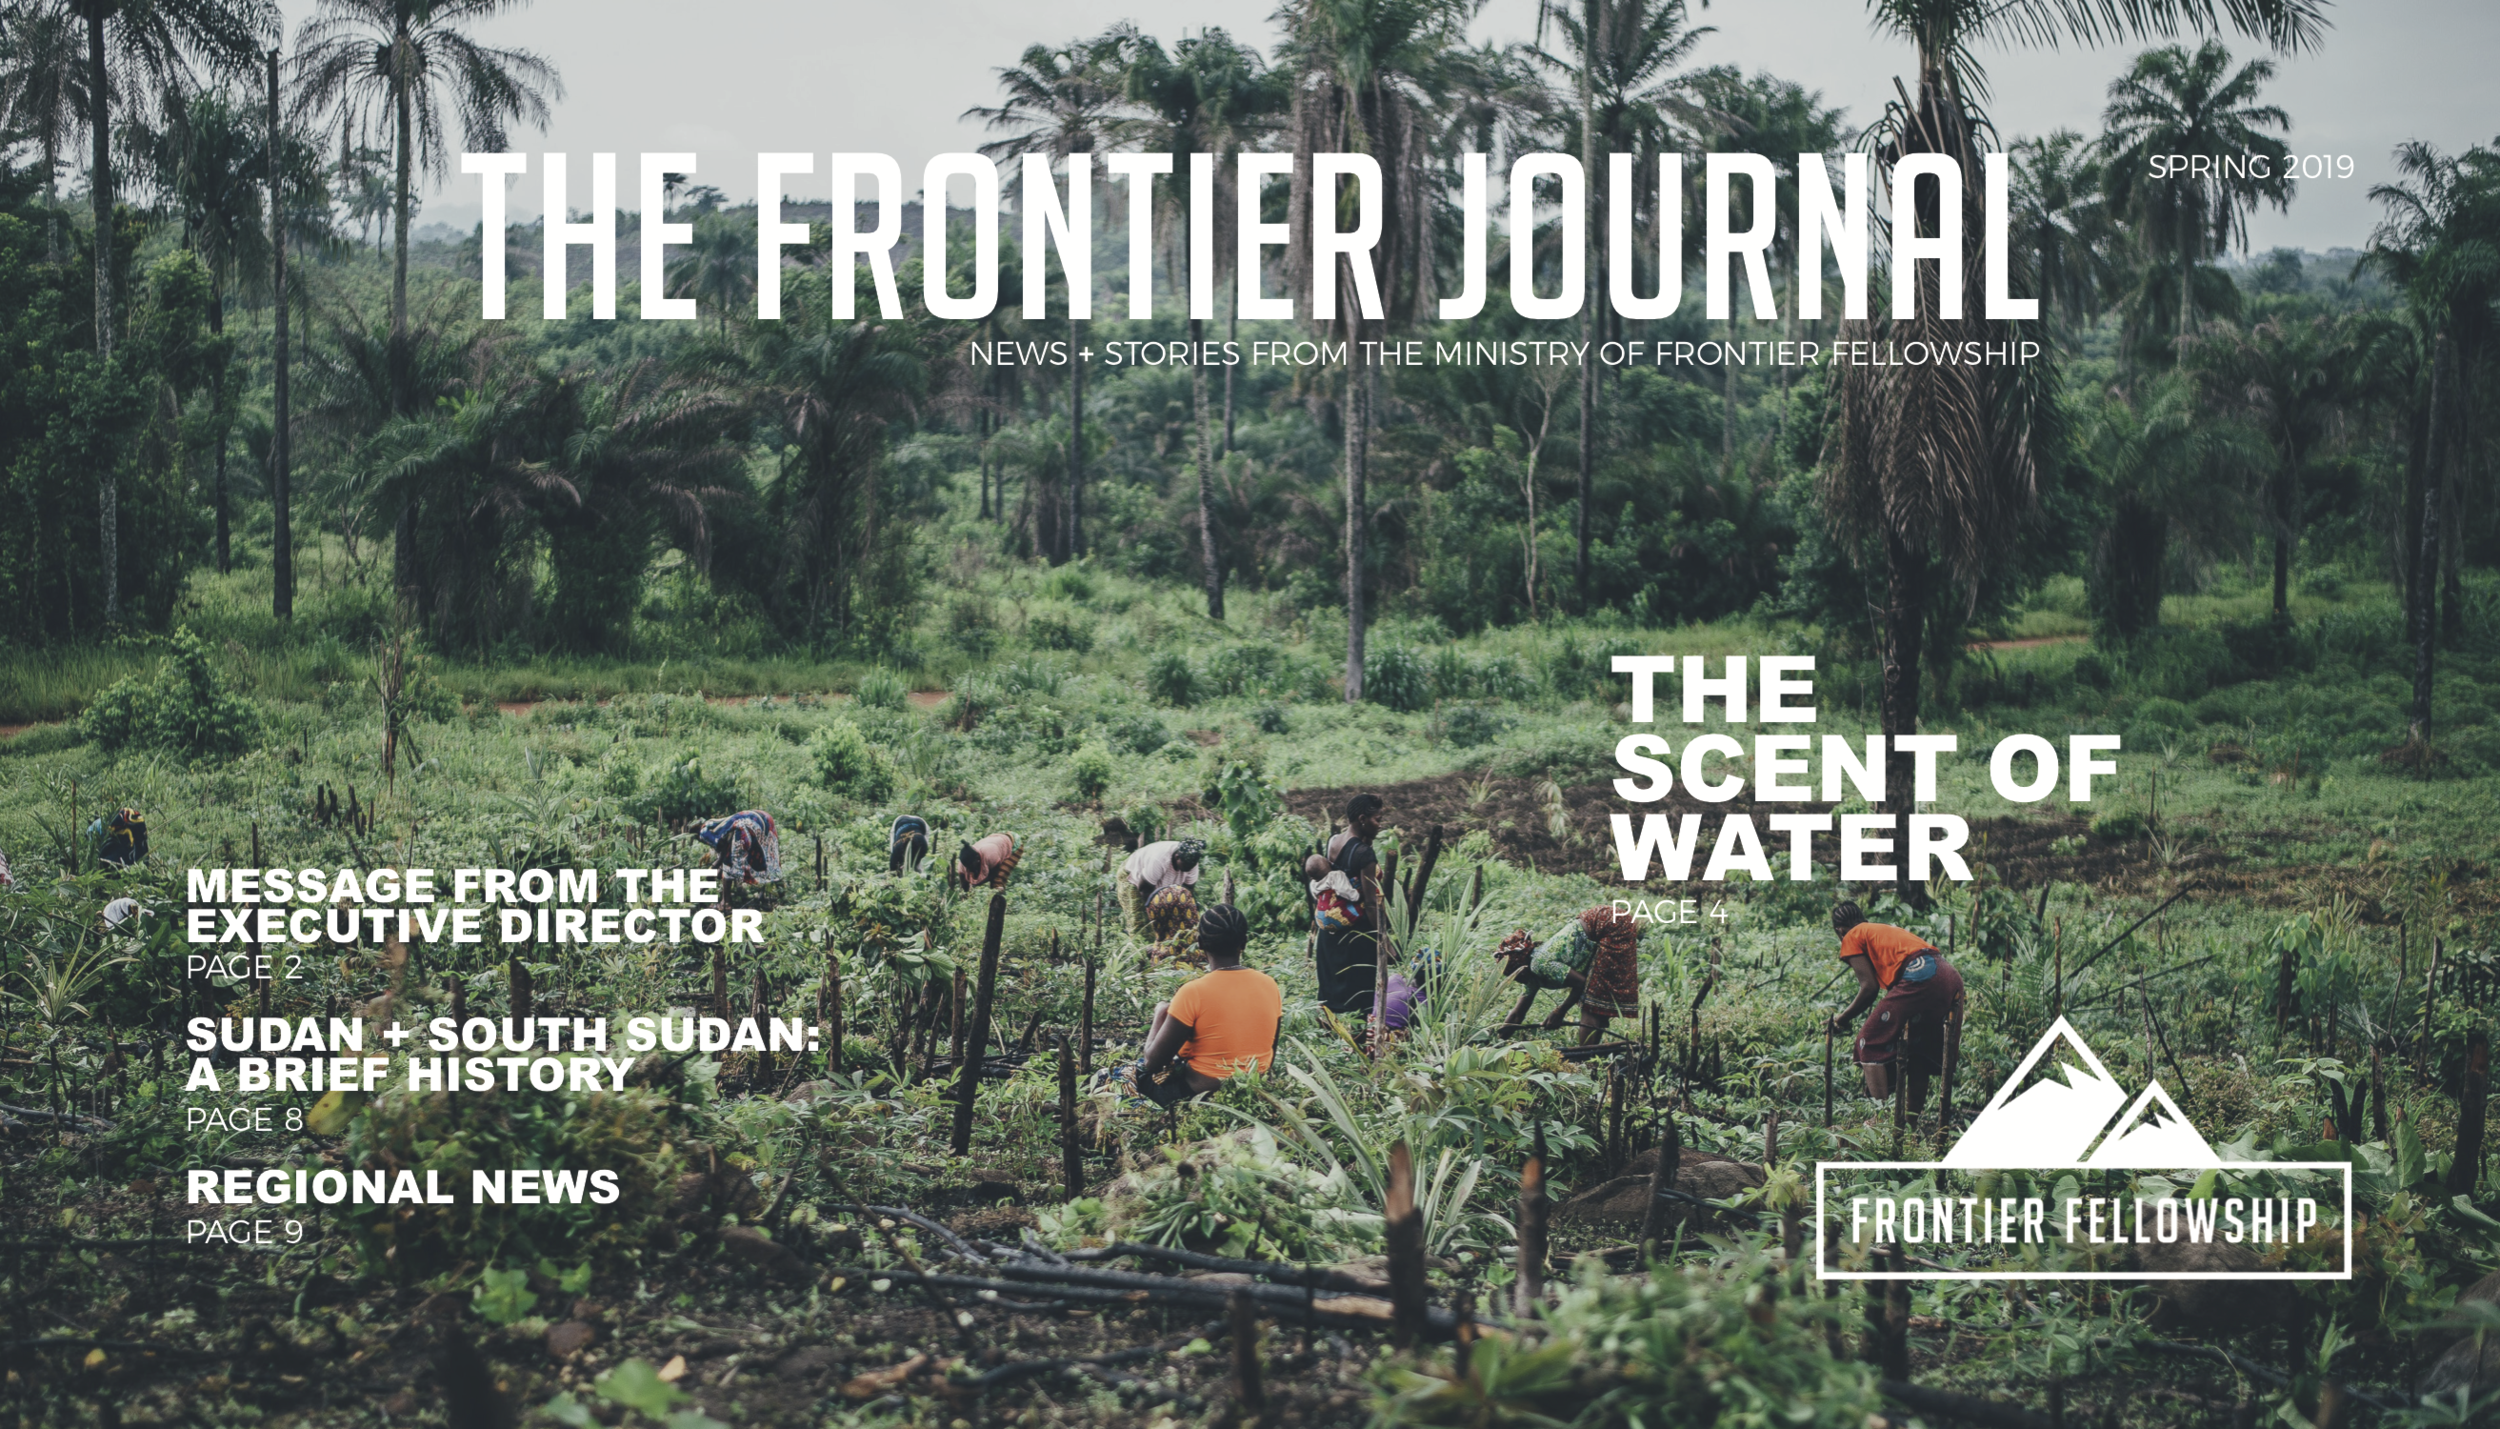 2019 Spring Frontier Journal cover.png